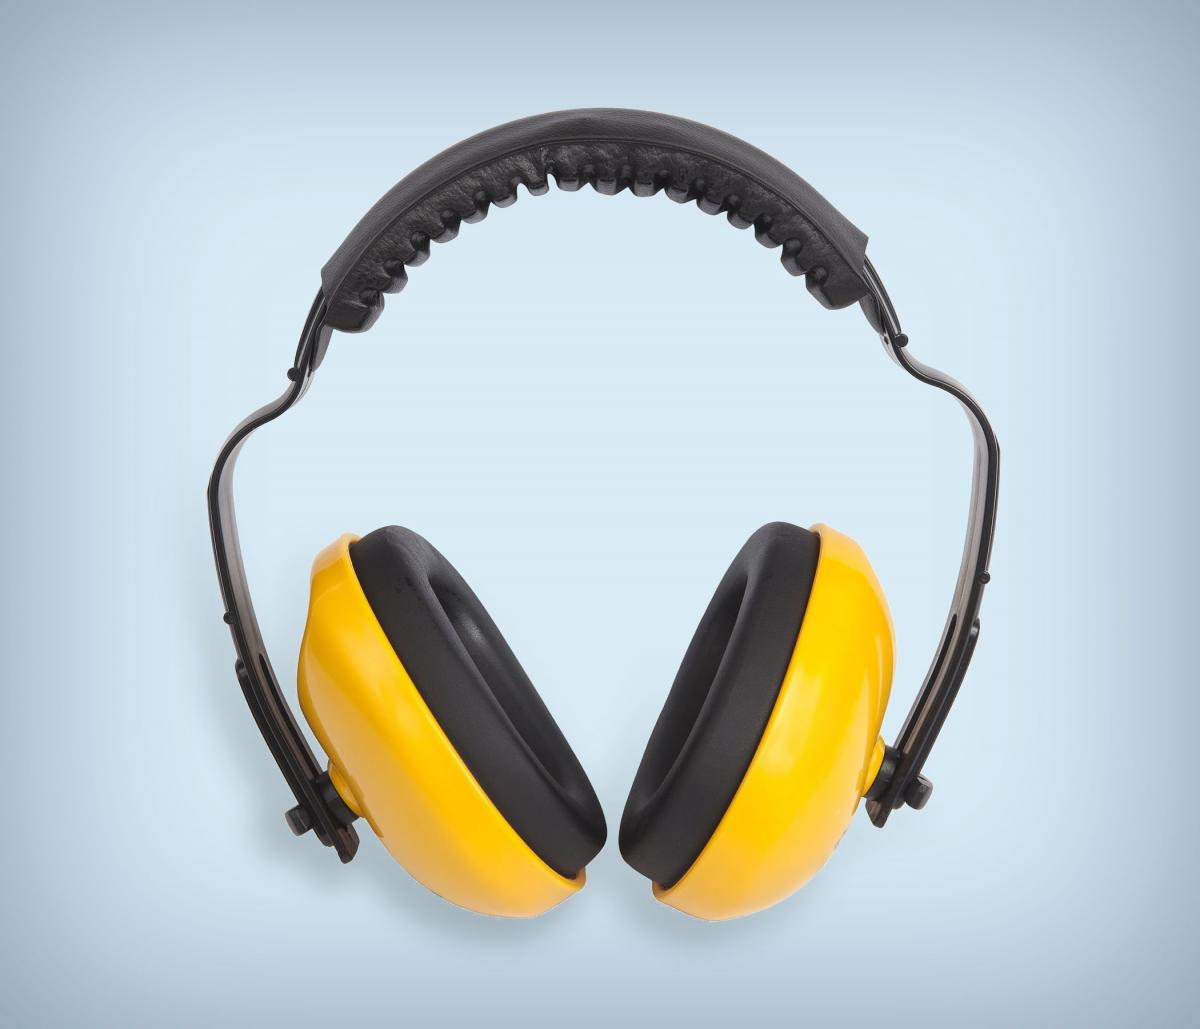 Yellow and black earmuffs used to protect hearing.